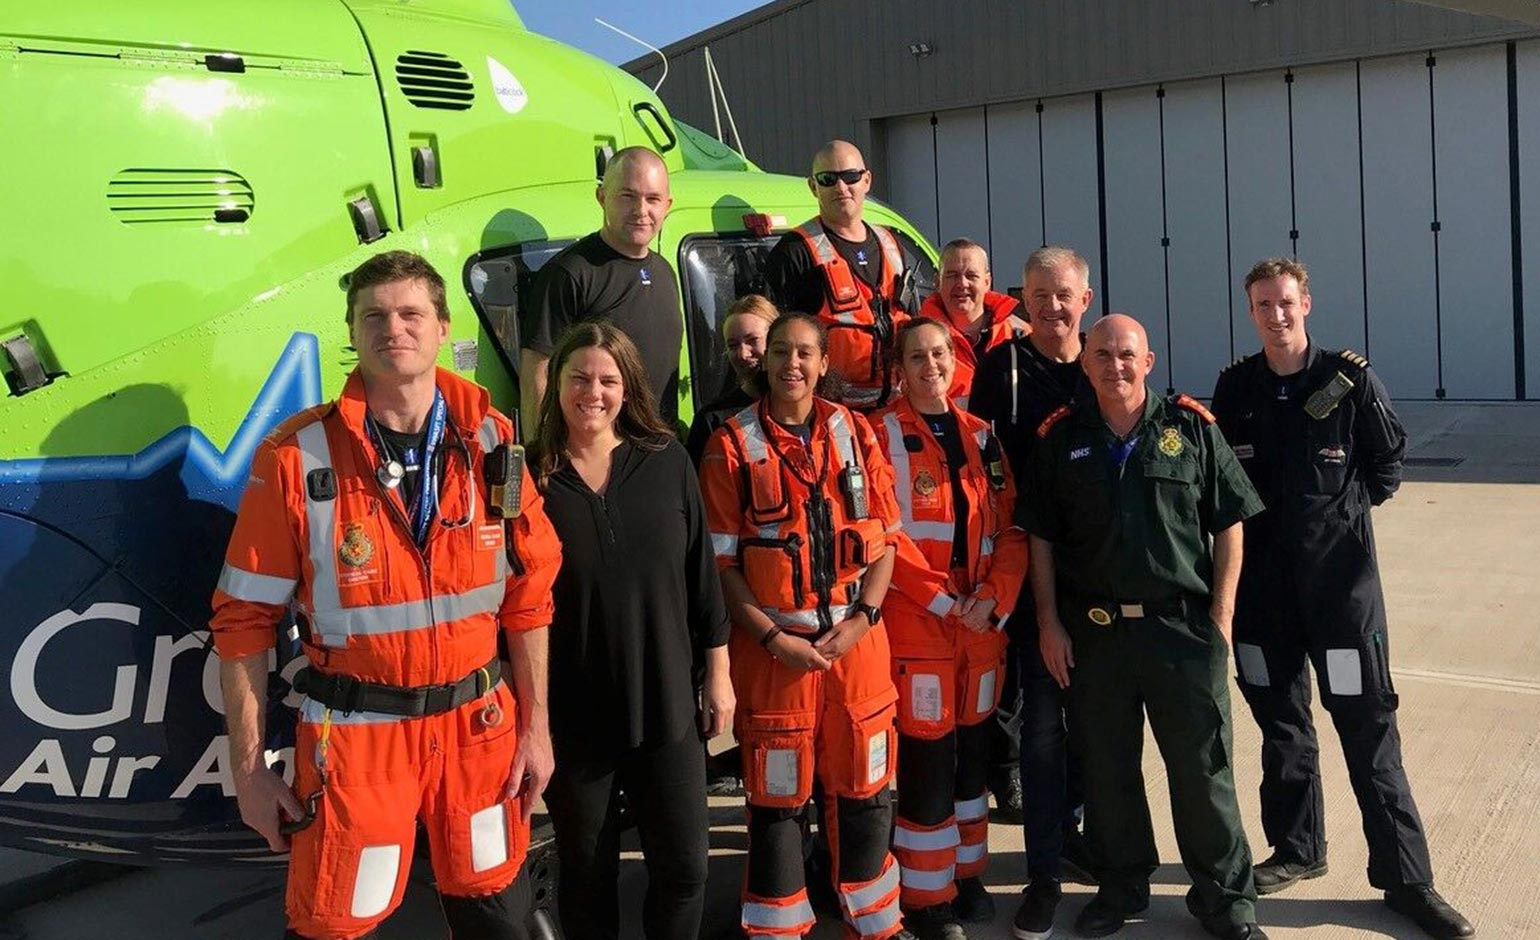 Air ambulance charity reaches fundraising target to purchase new air base